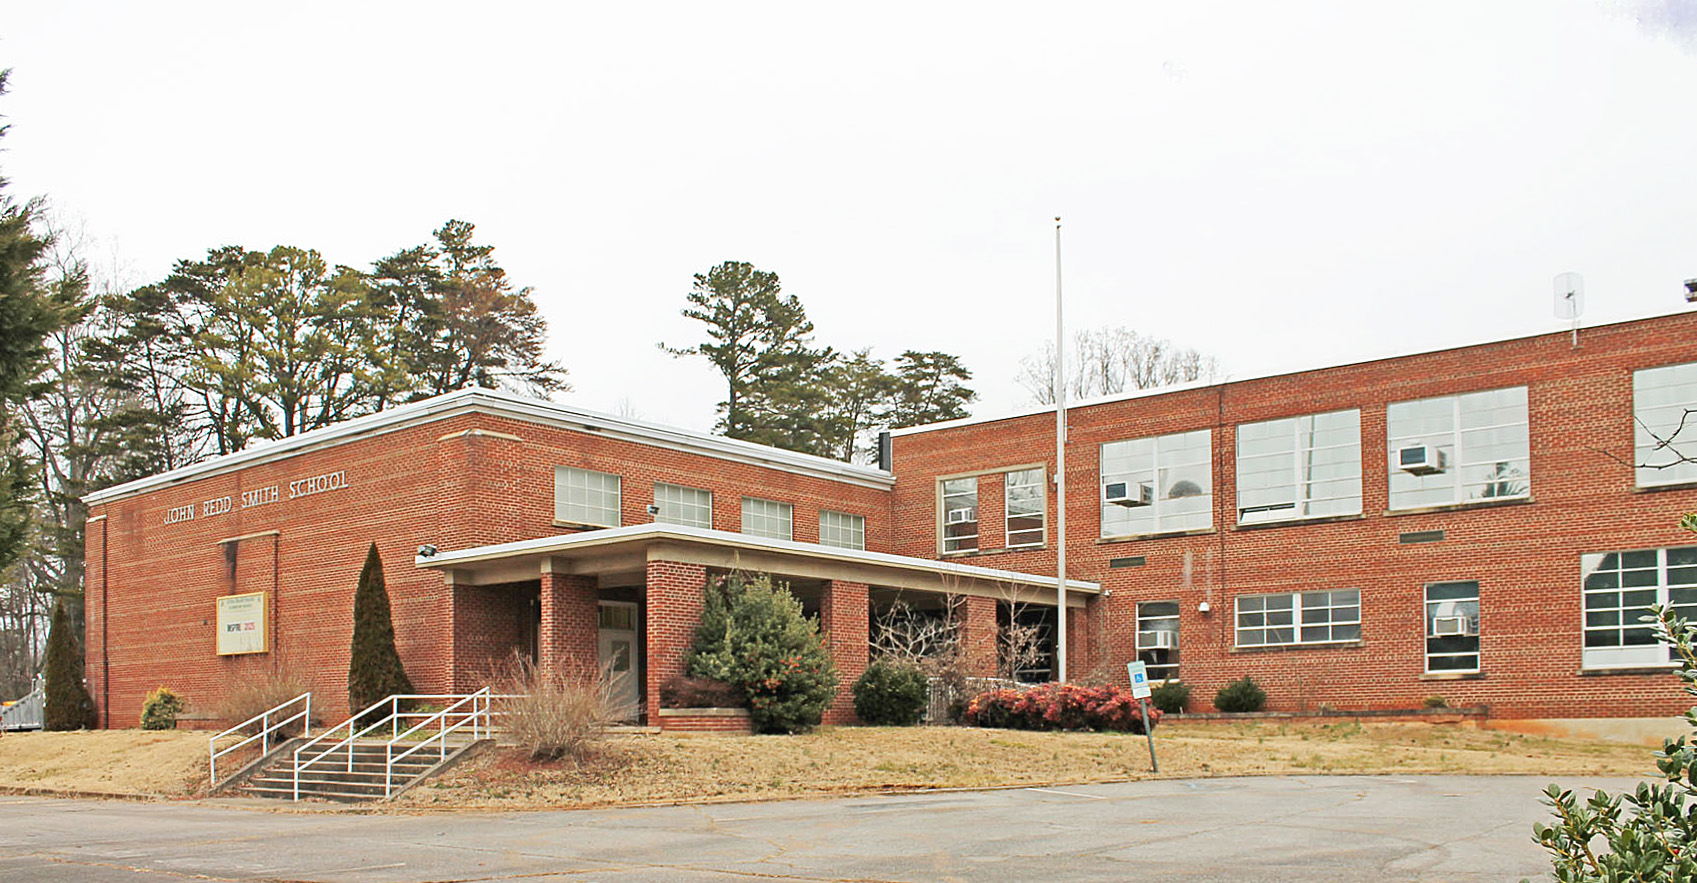 John Redd Smith Elementary School